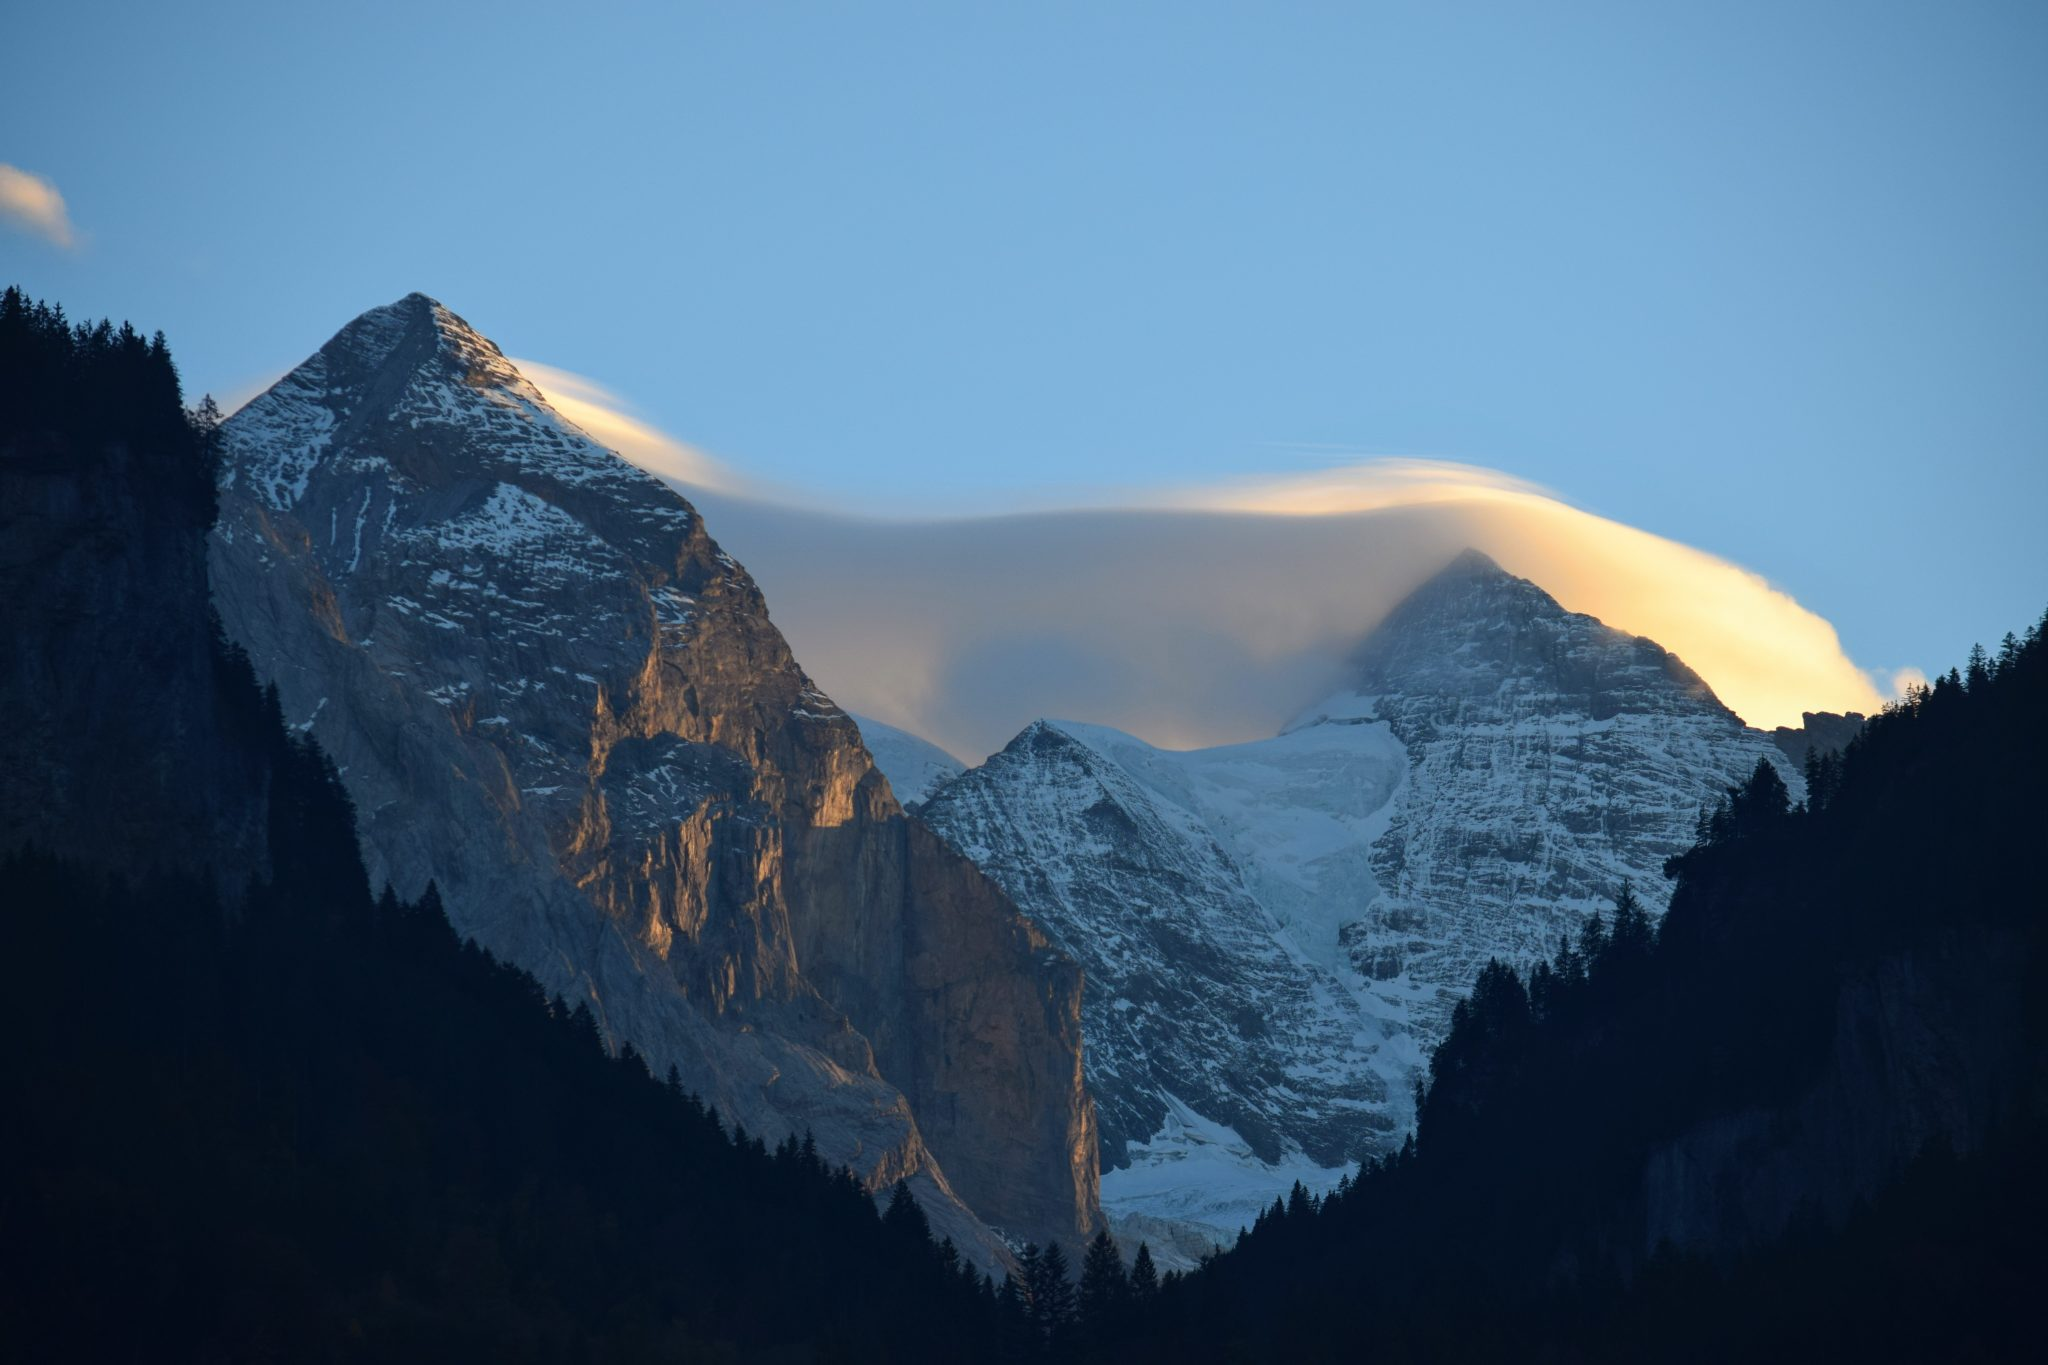 View of the Swiss Alps in Mountain Song by Lucy Fuggle